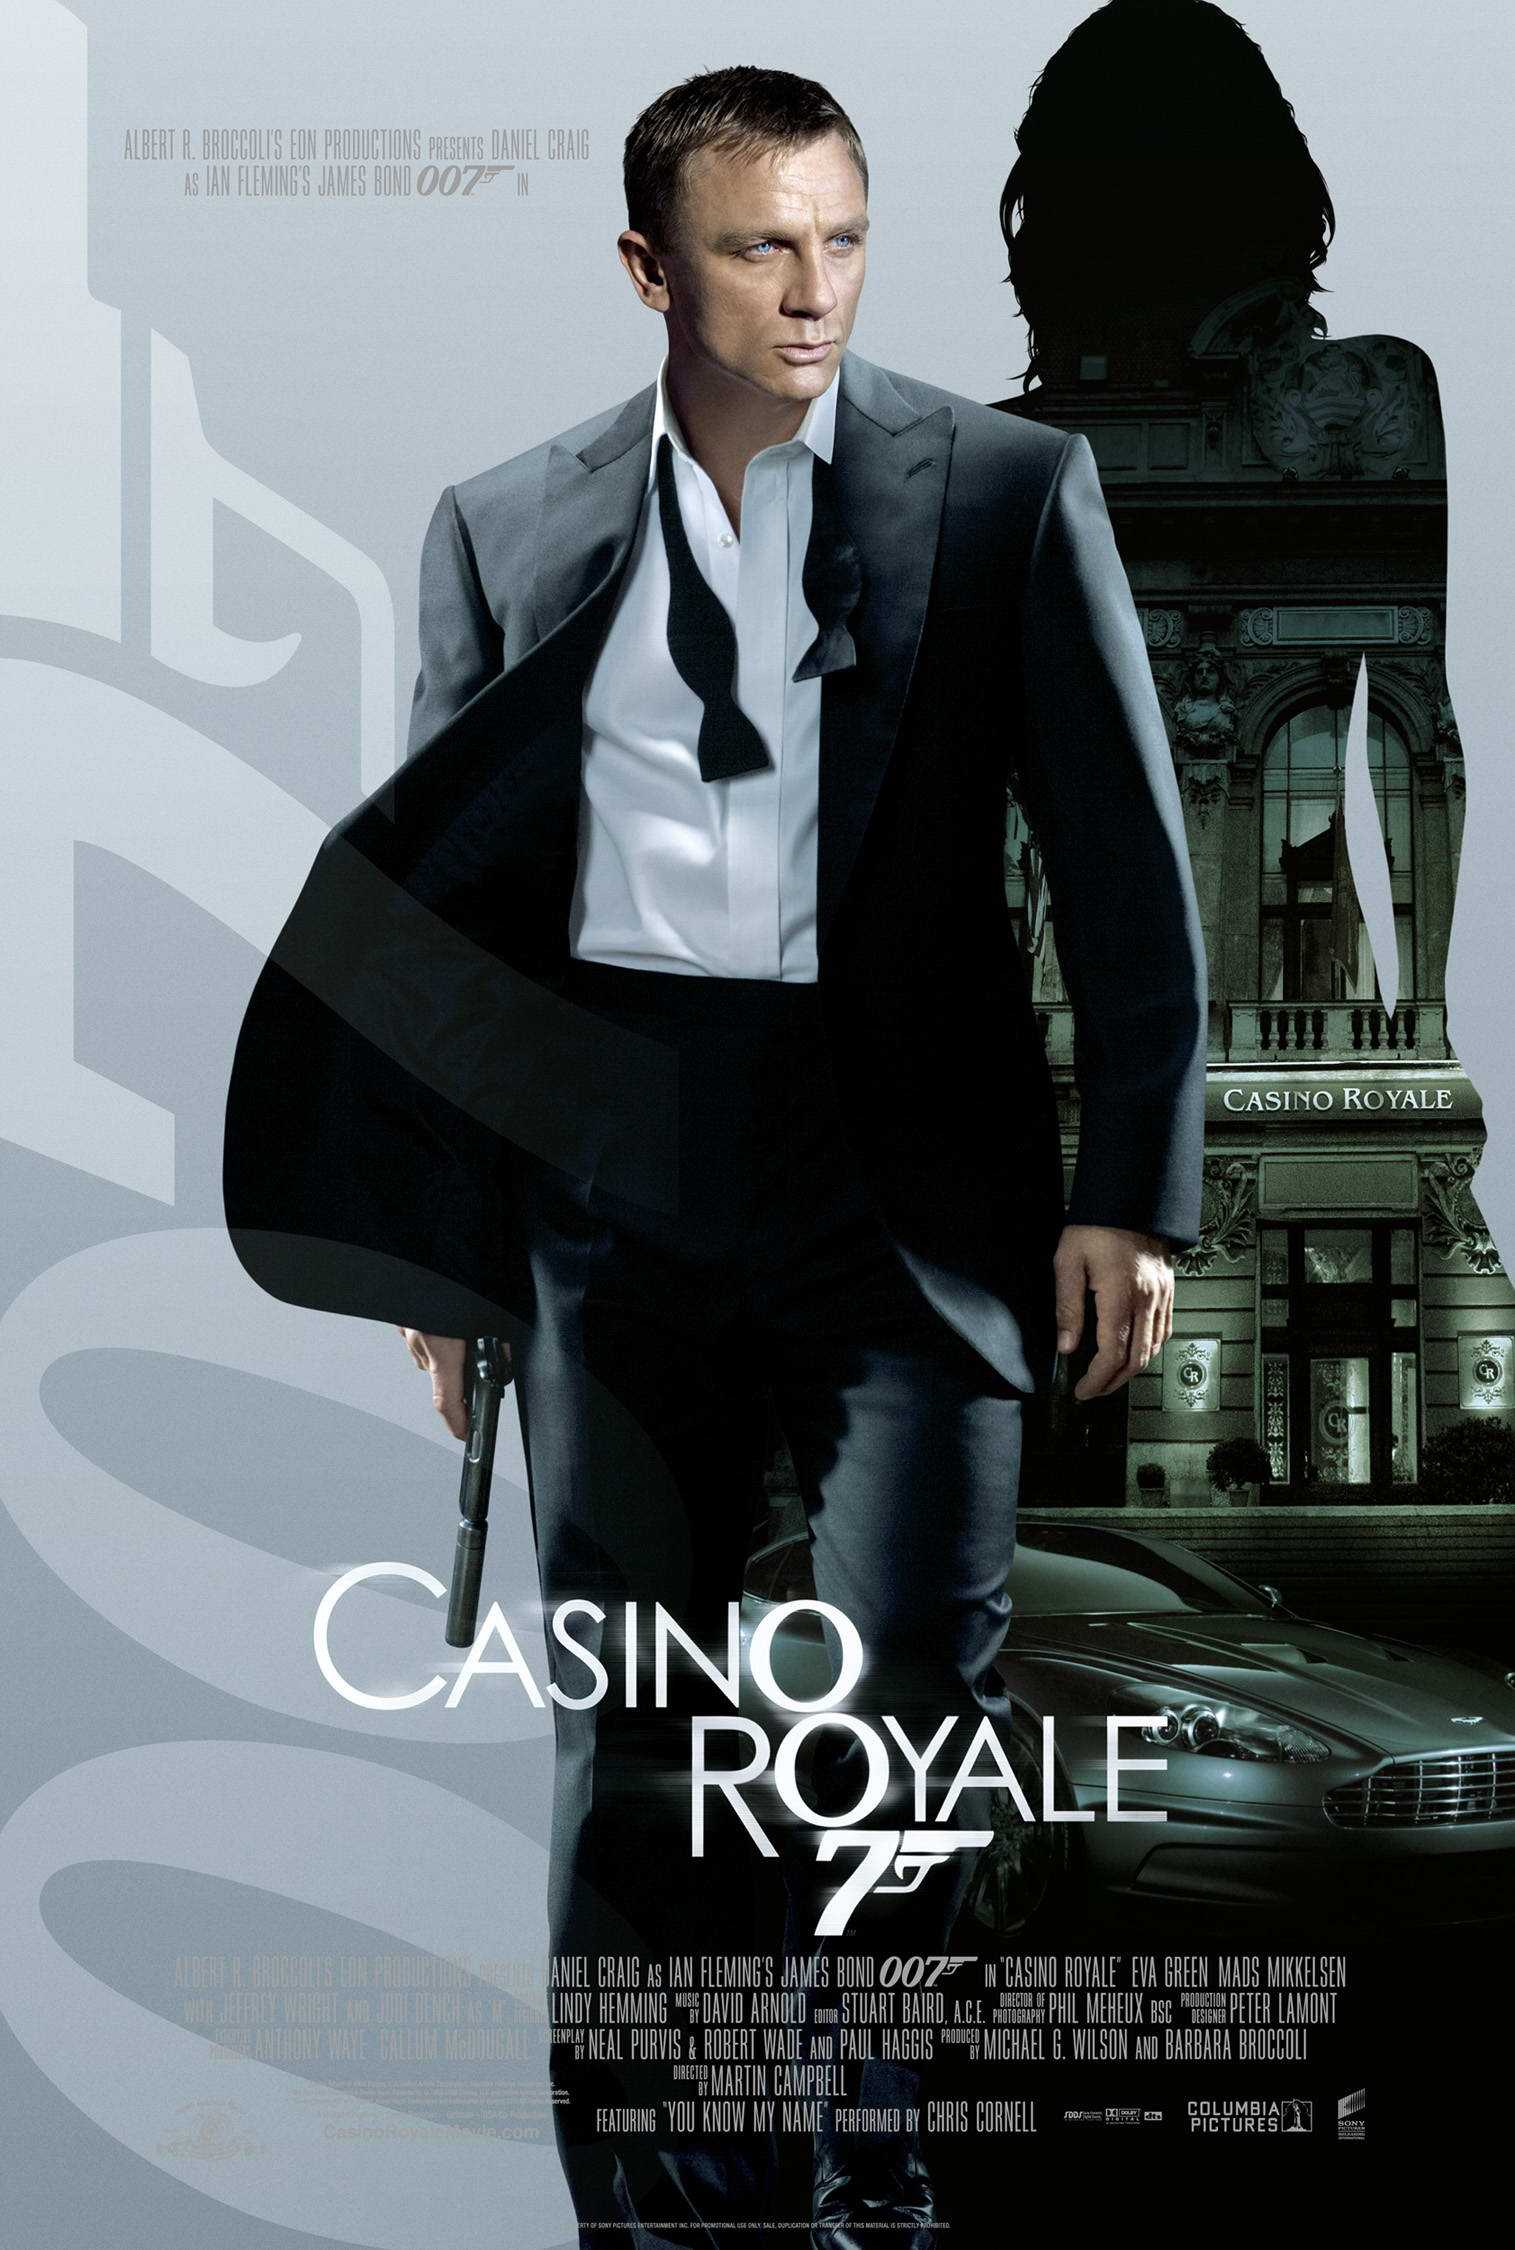 Watch casino royale free curacao off shore on line gambling